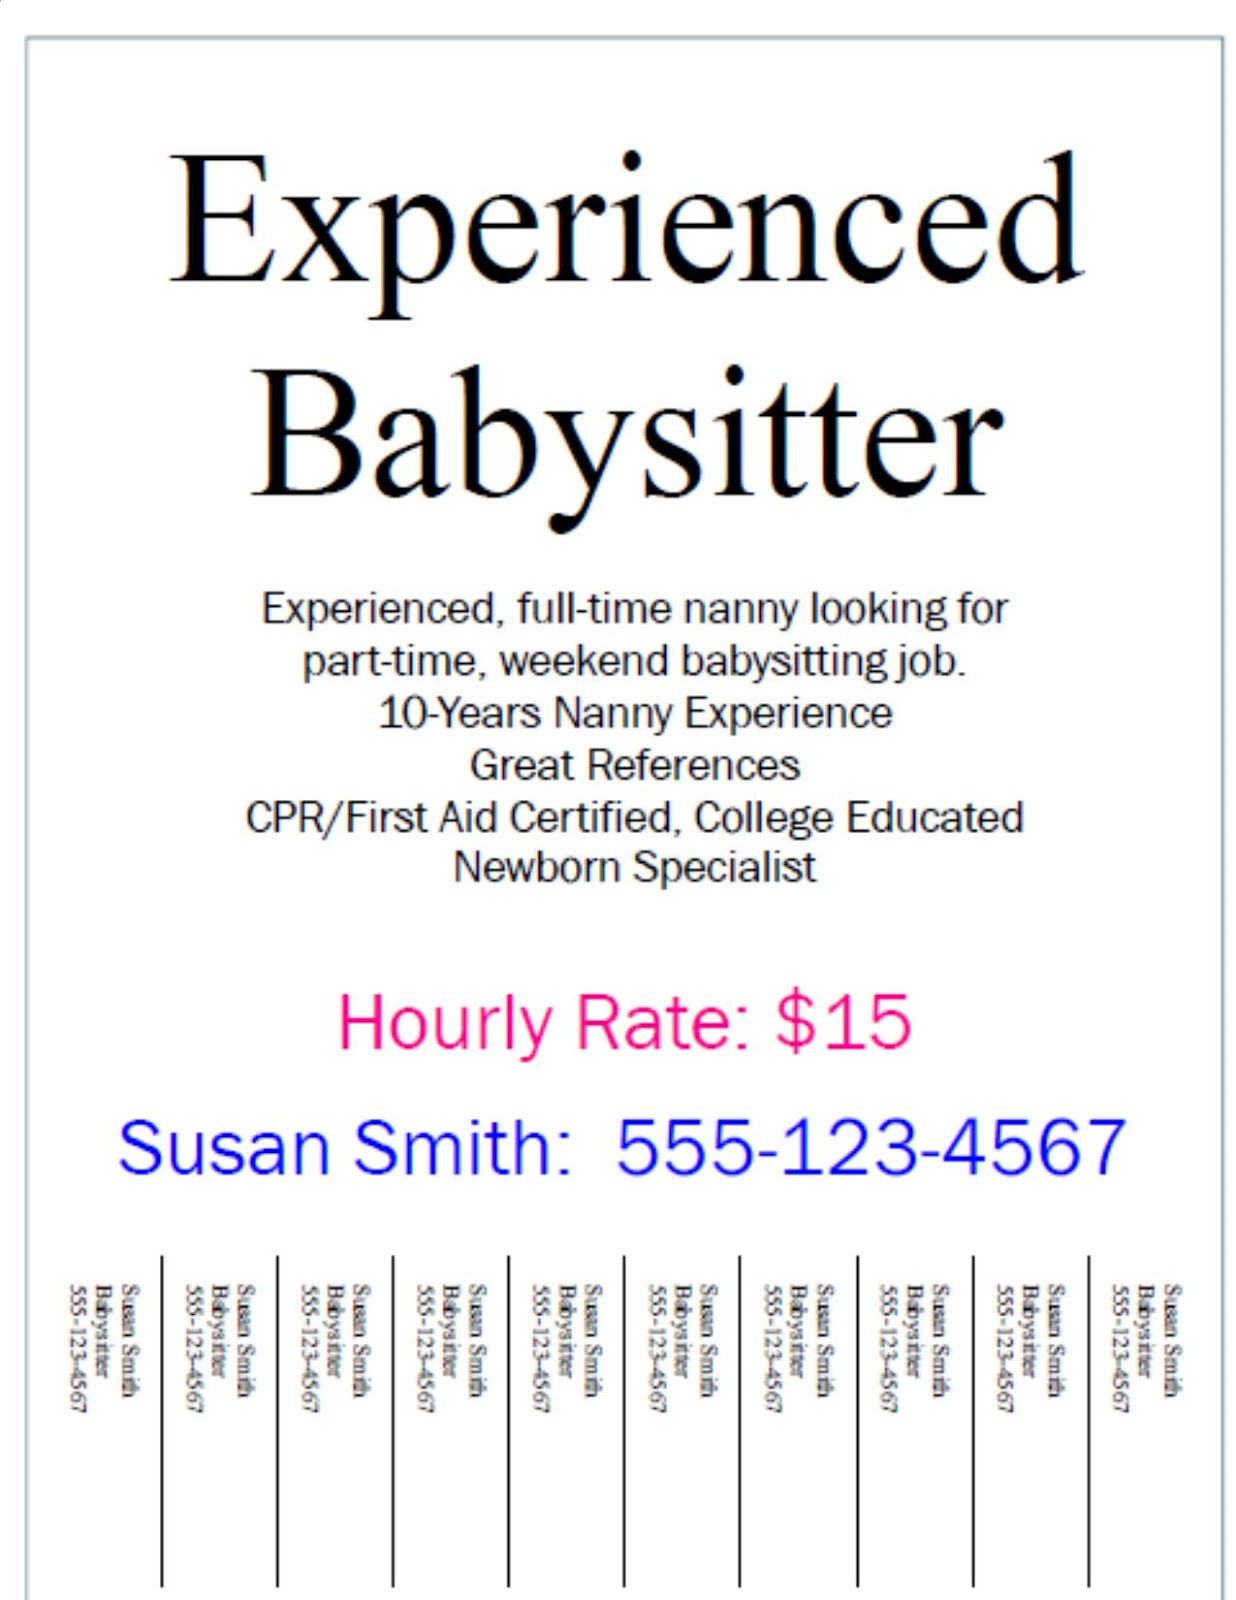 How To Be The Best Nanny Finding A Part Time Babysitting Job For